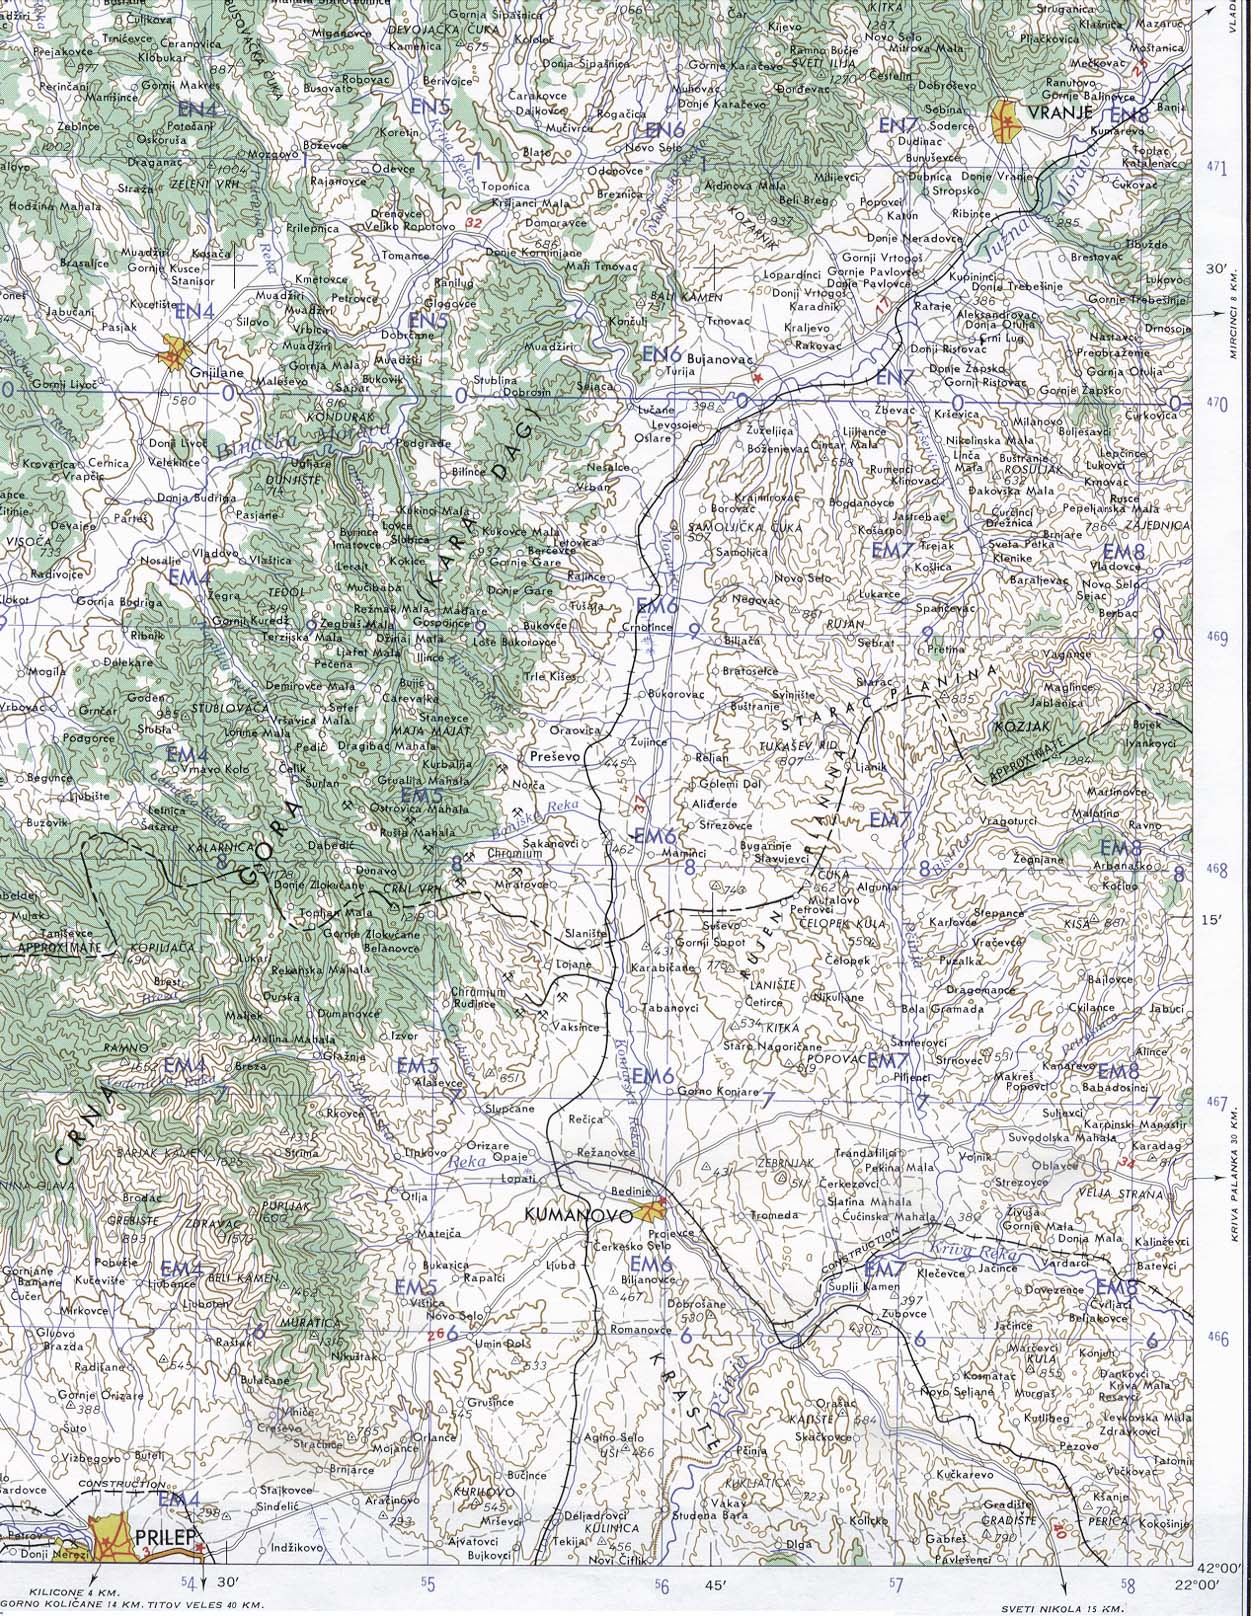 1Up Travel Maps of MacedoniaMacedonia Kumanovoprilep Area 1959